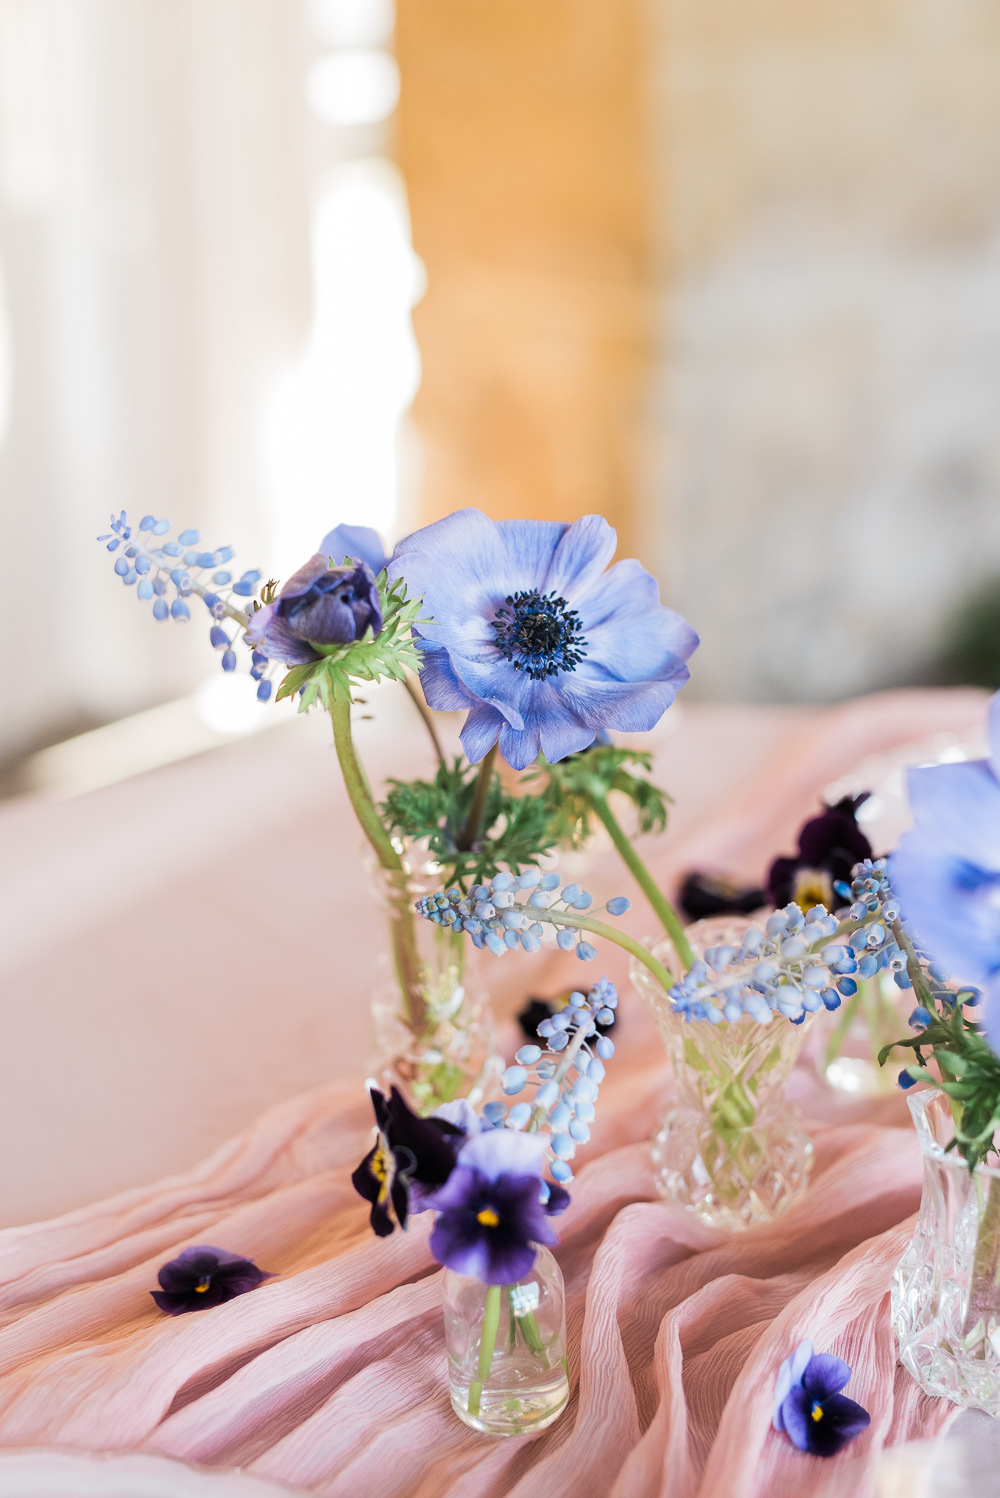 Blue Lilac Flowers Jars Bottles Vase Grape Hyacinth Ultra Violet Wedding Moon Gate Flower Arch Captured by Katrina Photography